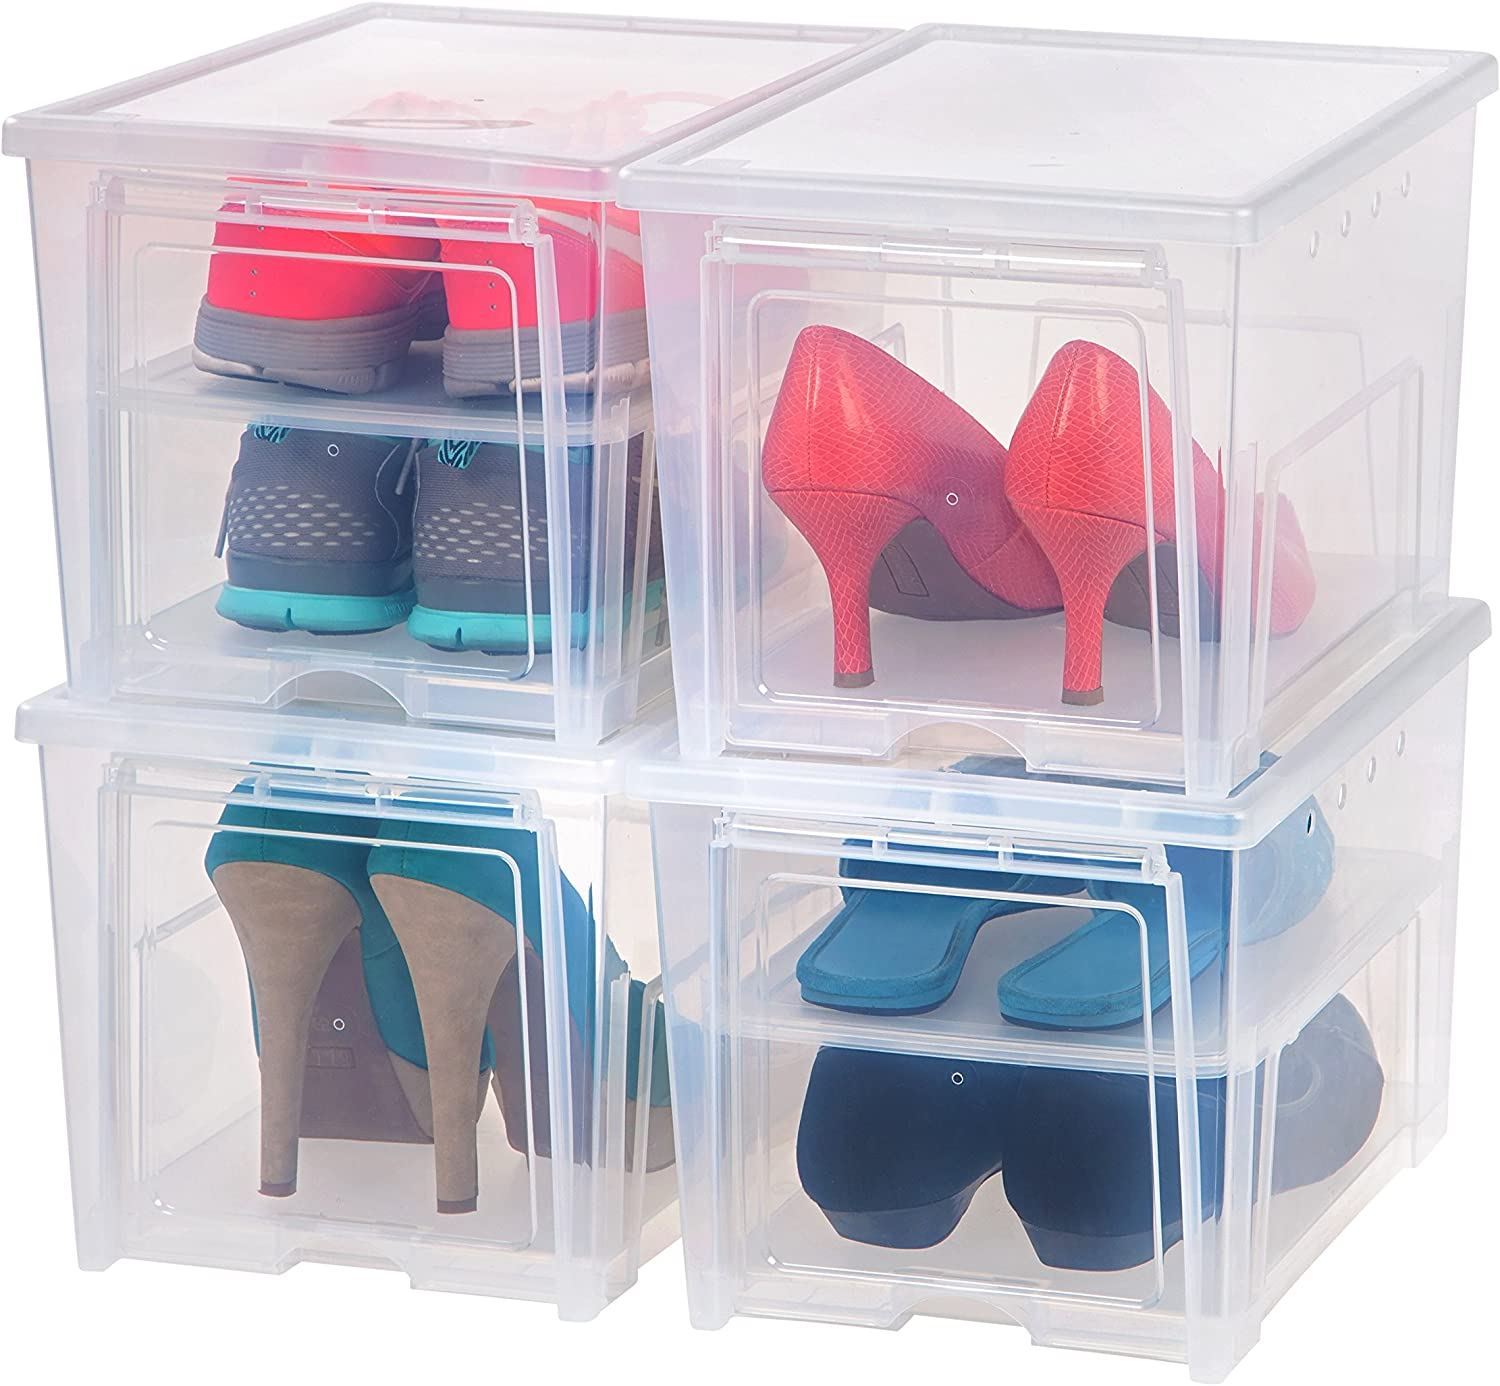 IRIS USA EA-HB Shoe storage box Super beauty product restock quality top Clear Tall Count Max 69% OFF 4